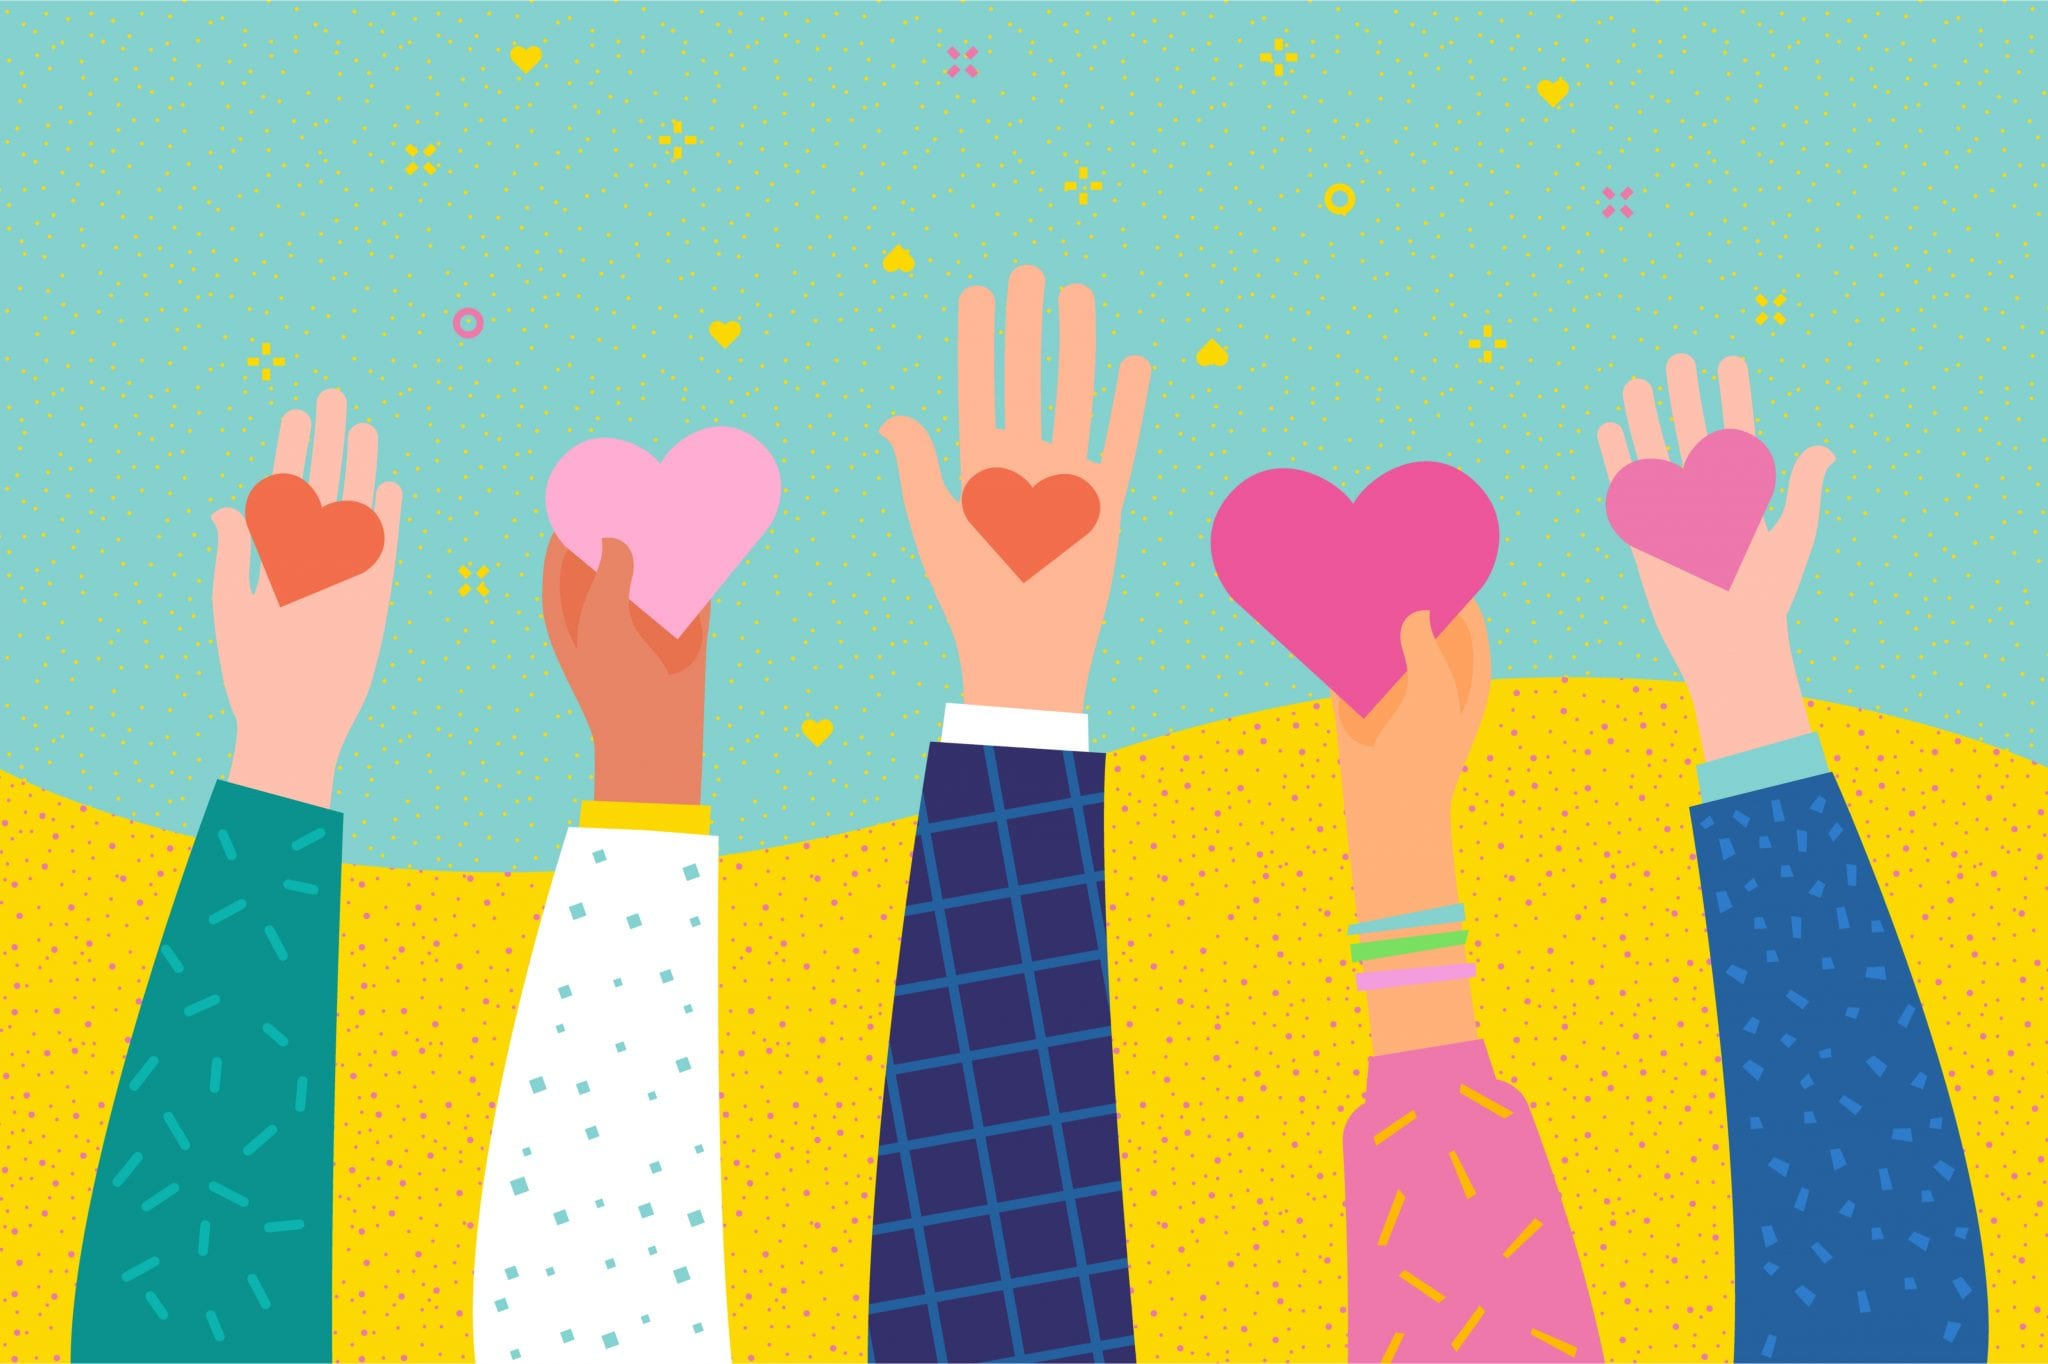 Concept of Charity and Donation. Give and Share Your Love to People. Hands Holding a Heart Symbol.